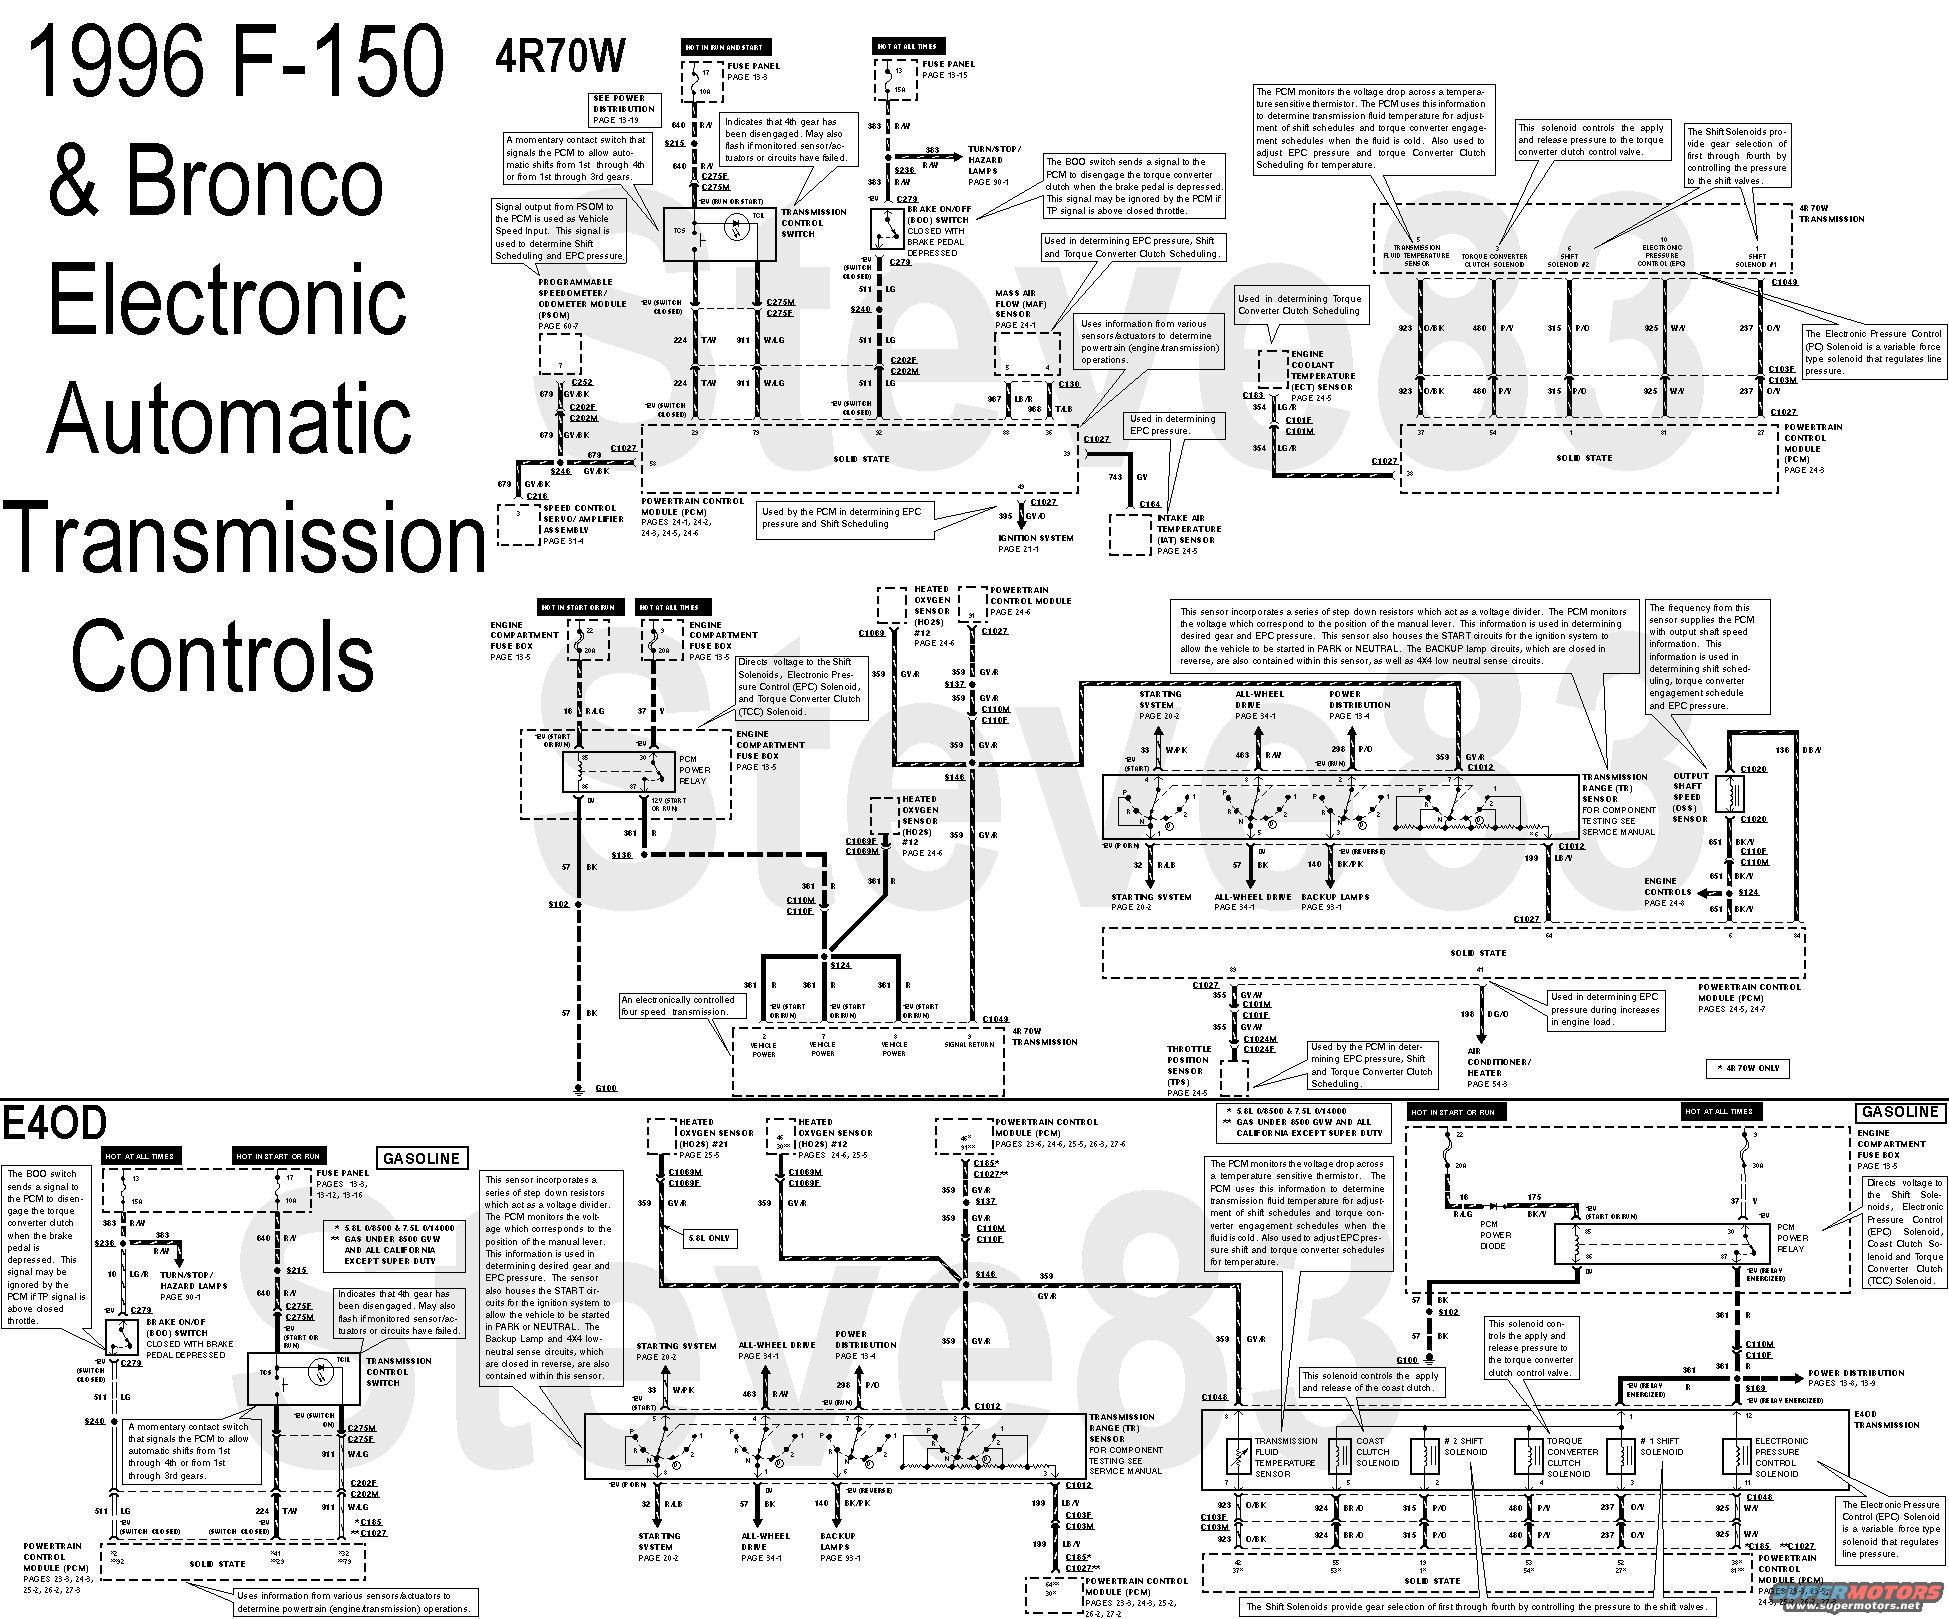 DIAGRAM] Ford Transit Wiring Diagram 96 1 FULL Version HD Quality 96 1 -  HOTWIRINGREALITY.ABERCROMBIEANDFITCHPACHER.FRDiagram Database